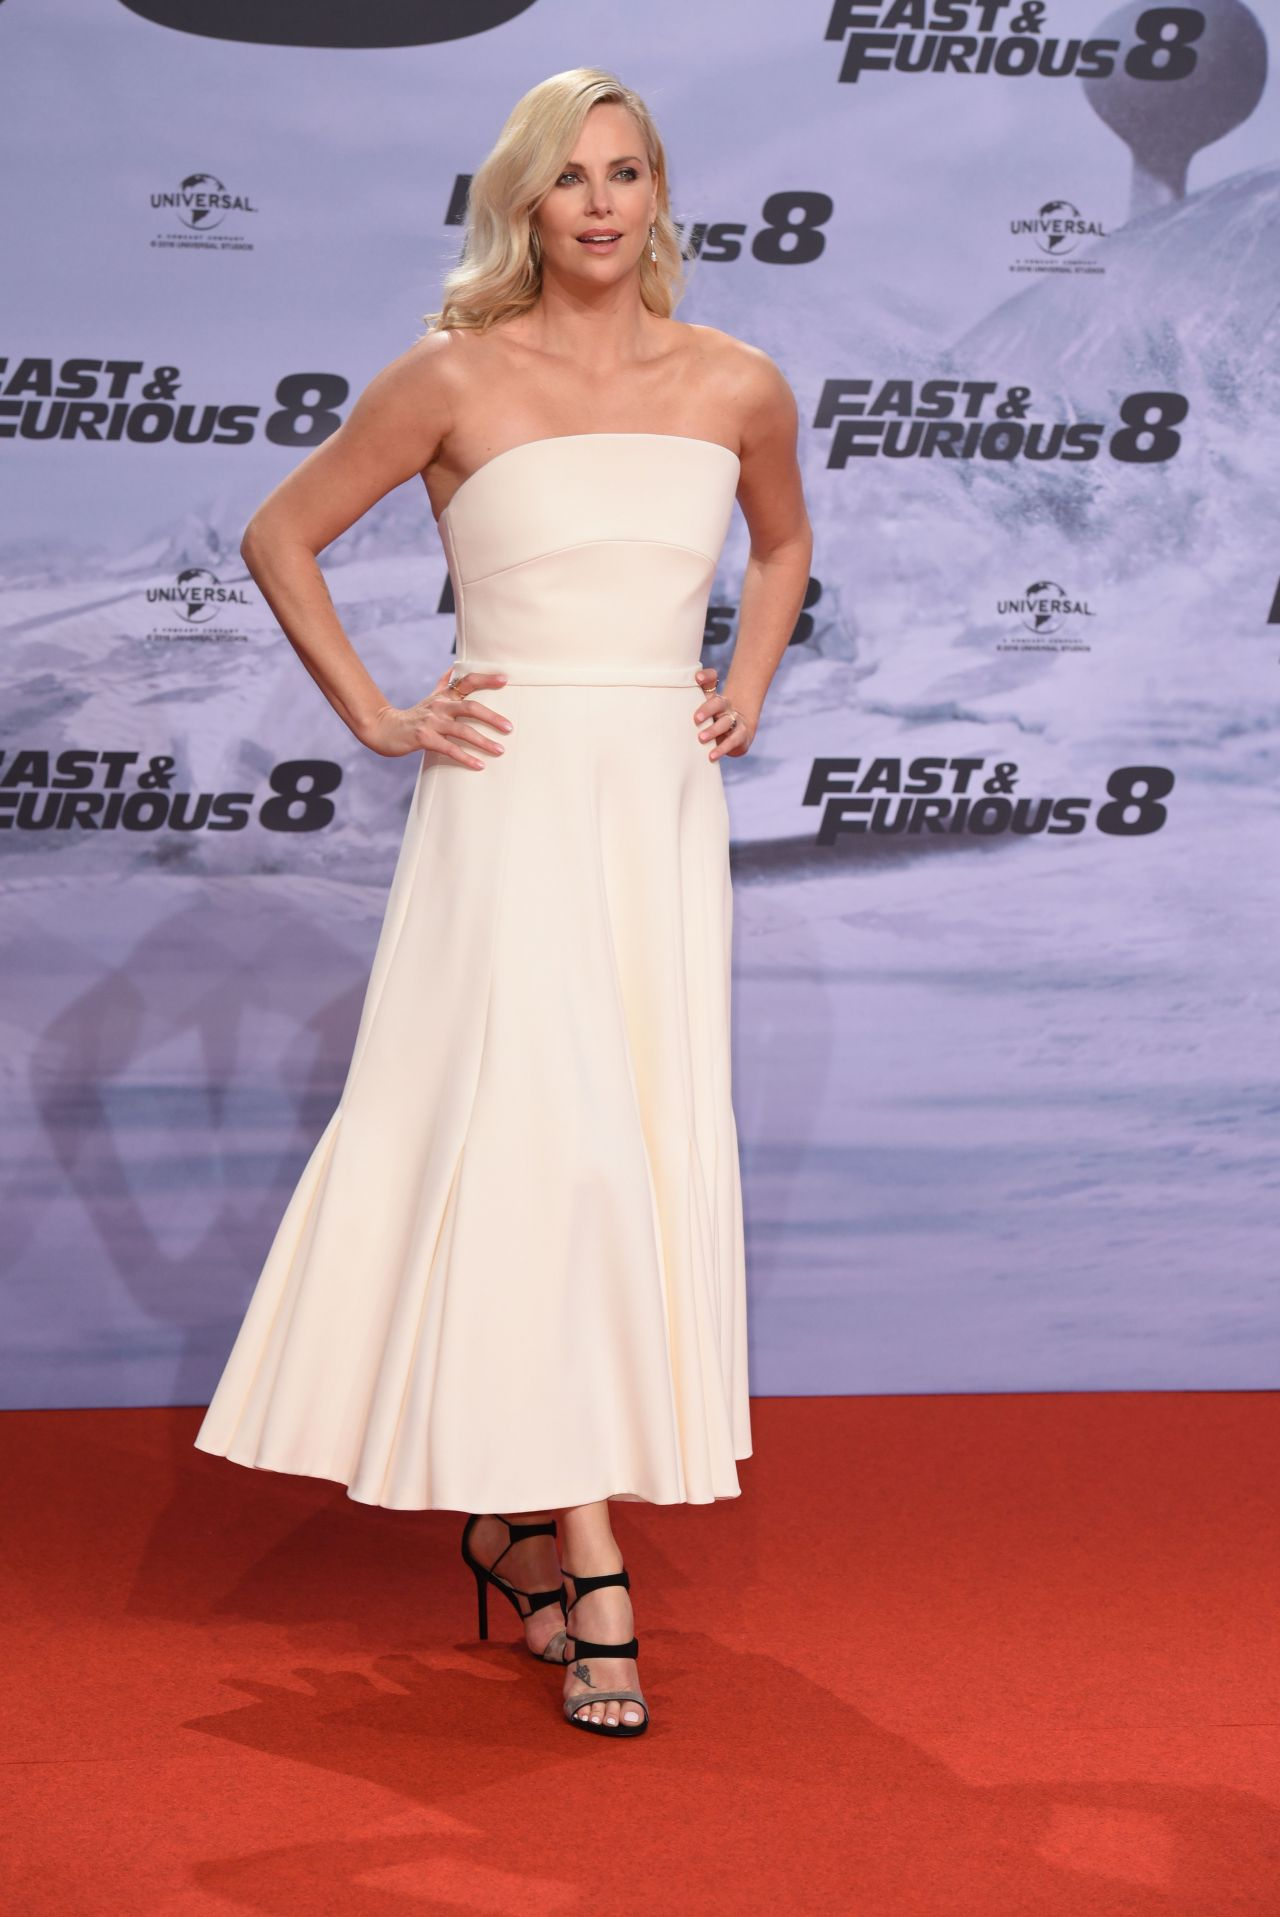 Fast And Furious 8 Premiere Berlin